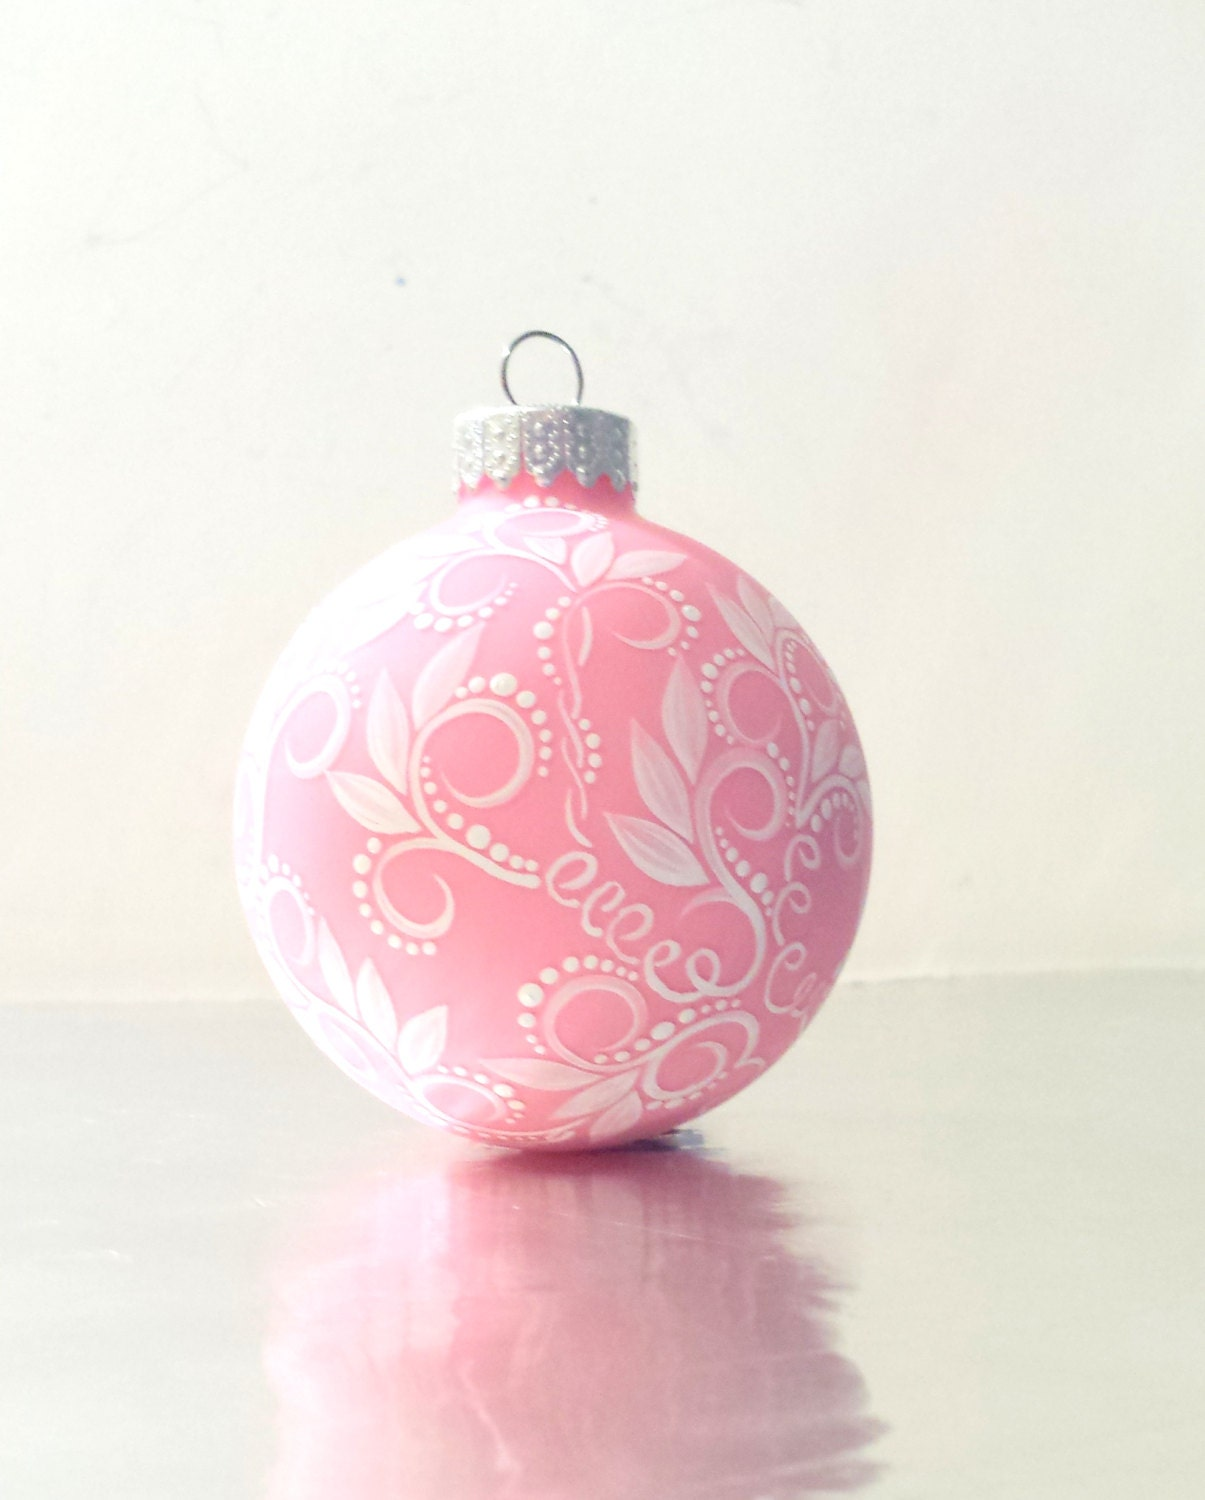 Christmas ornament small glass pink and white swirls